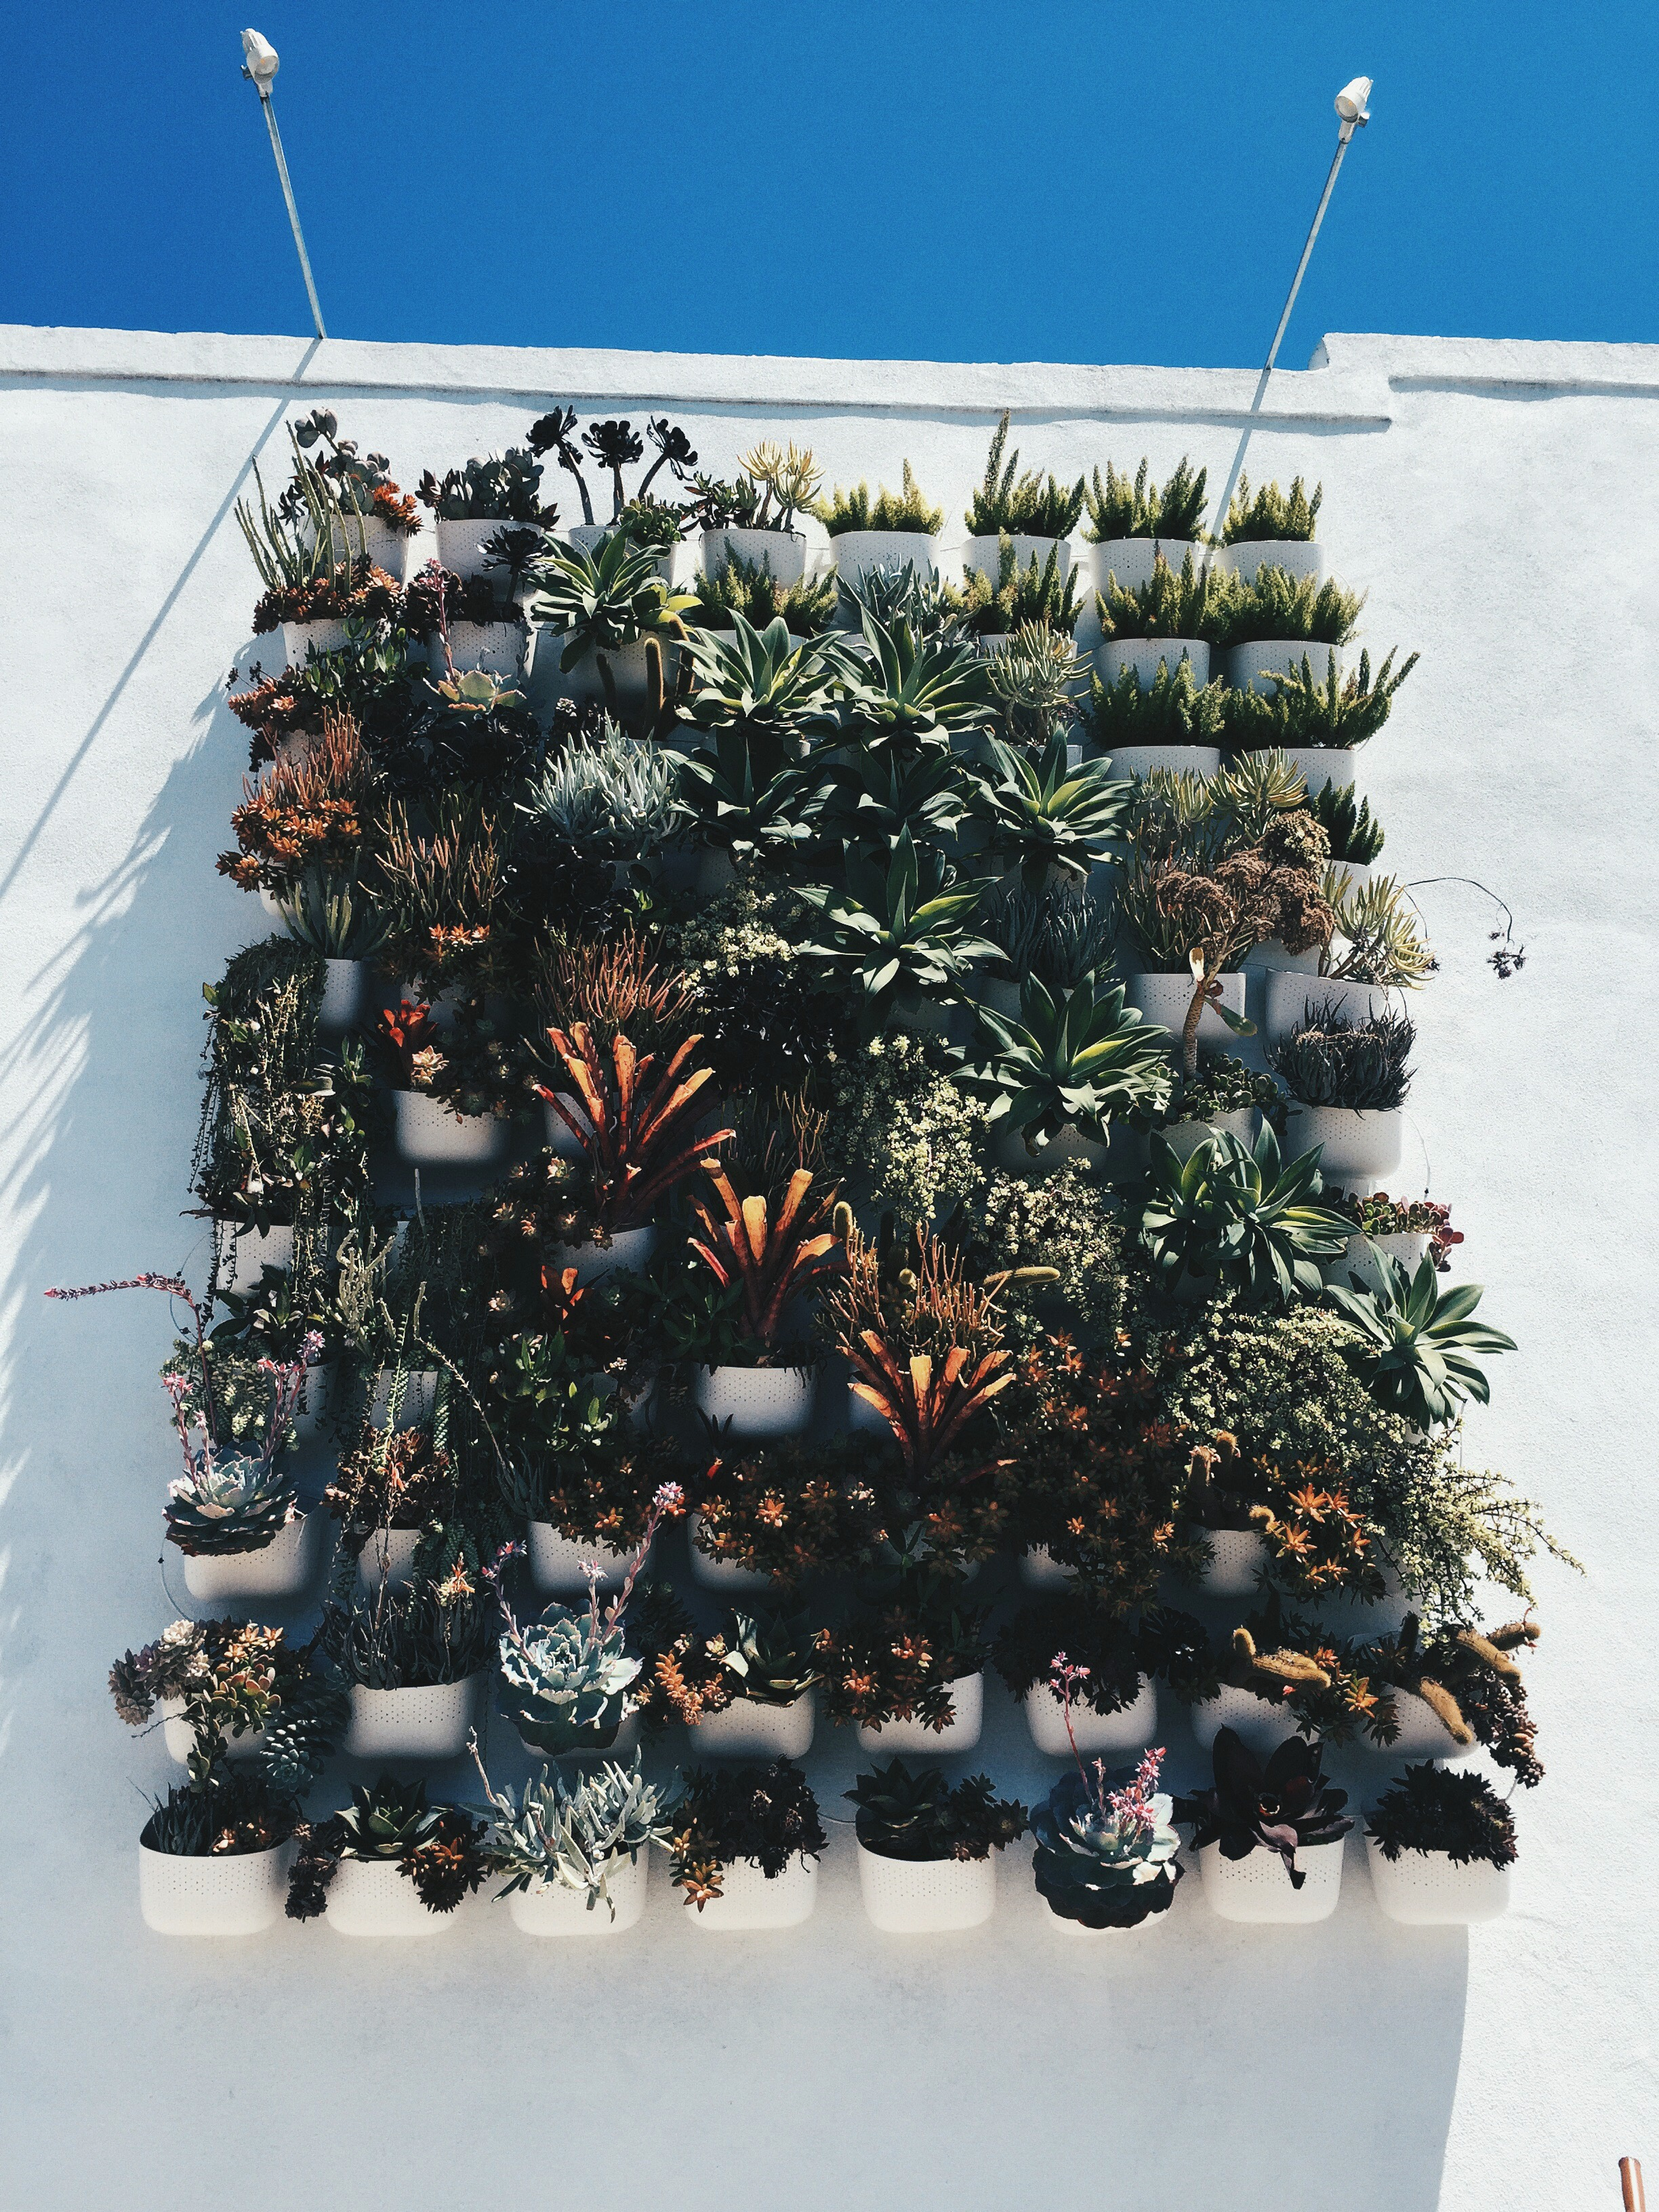 I also visited a little hipster store called Pigment. It is one of those cute shops that sells random things and adorable cards, and plants, and apartment accessories that you don't need but that you definitely now want. They had this incredible succulent wall outside. It was heaven.